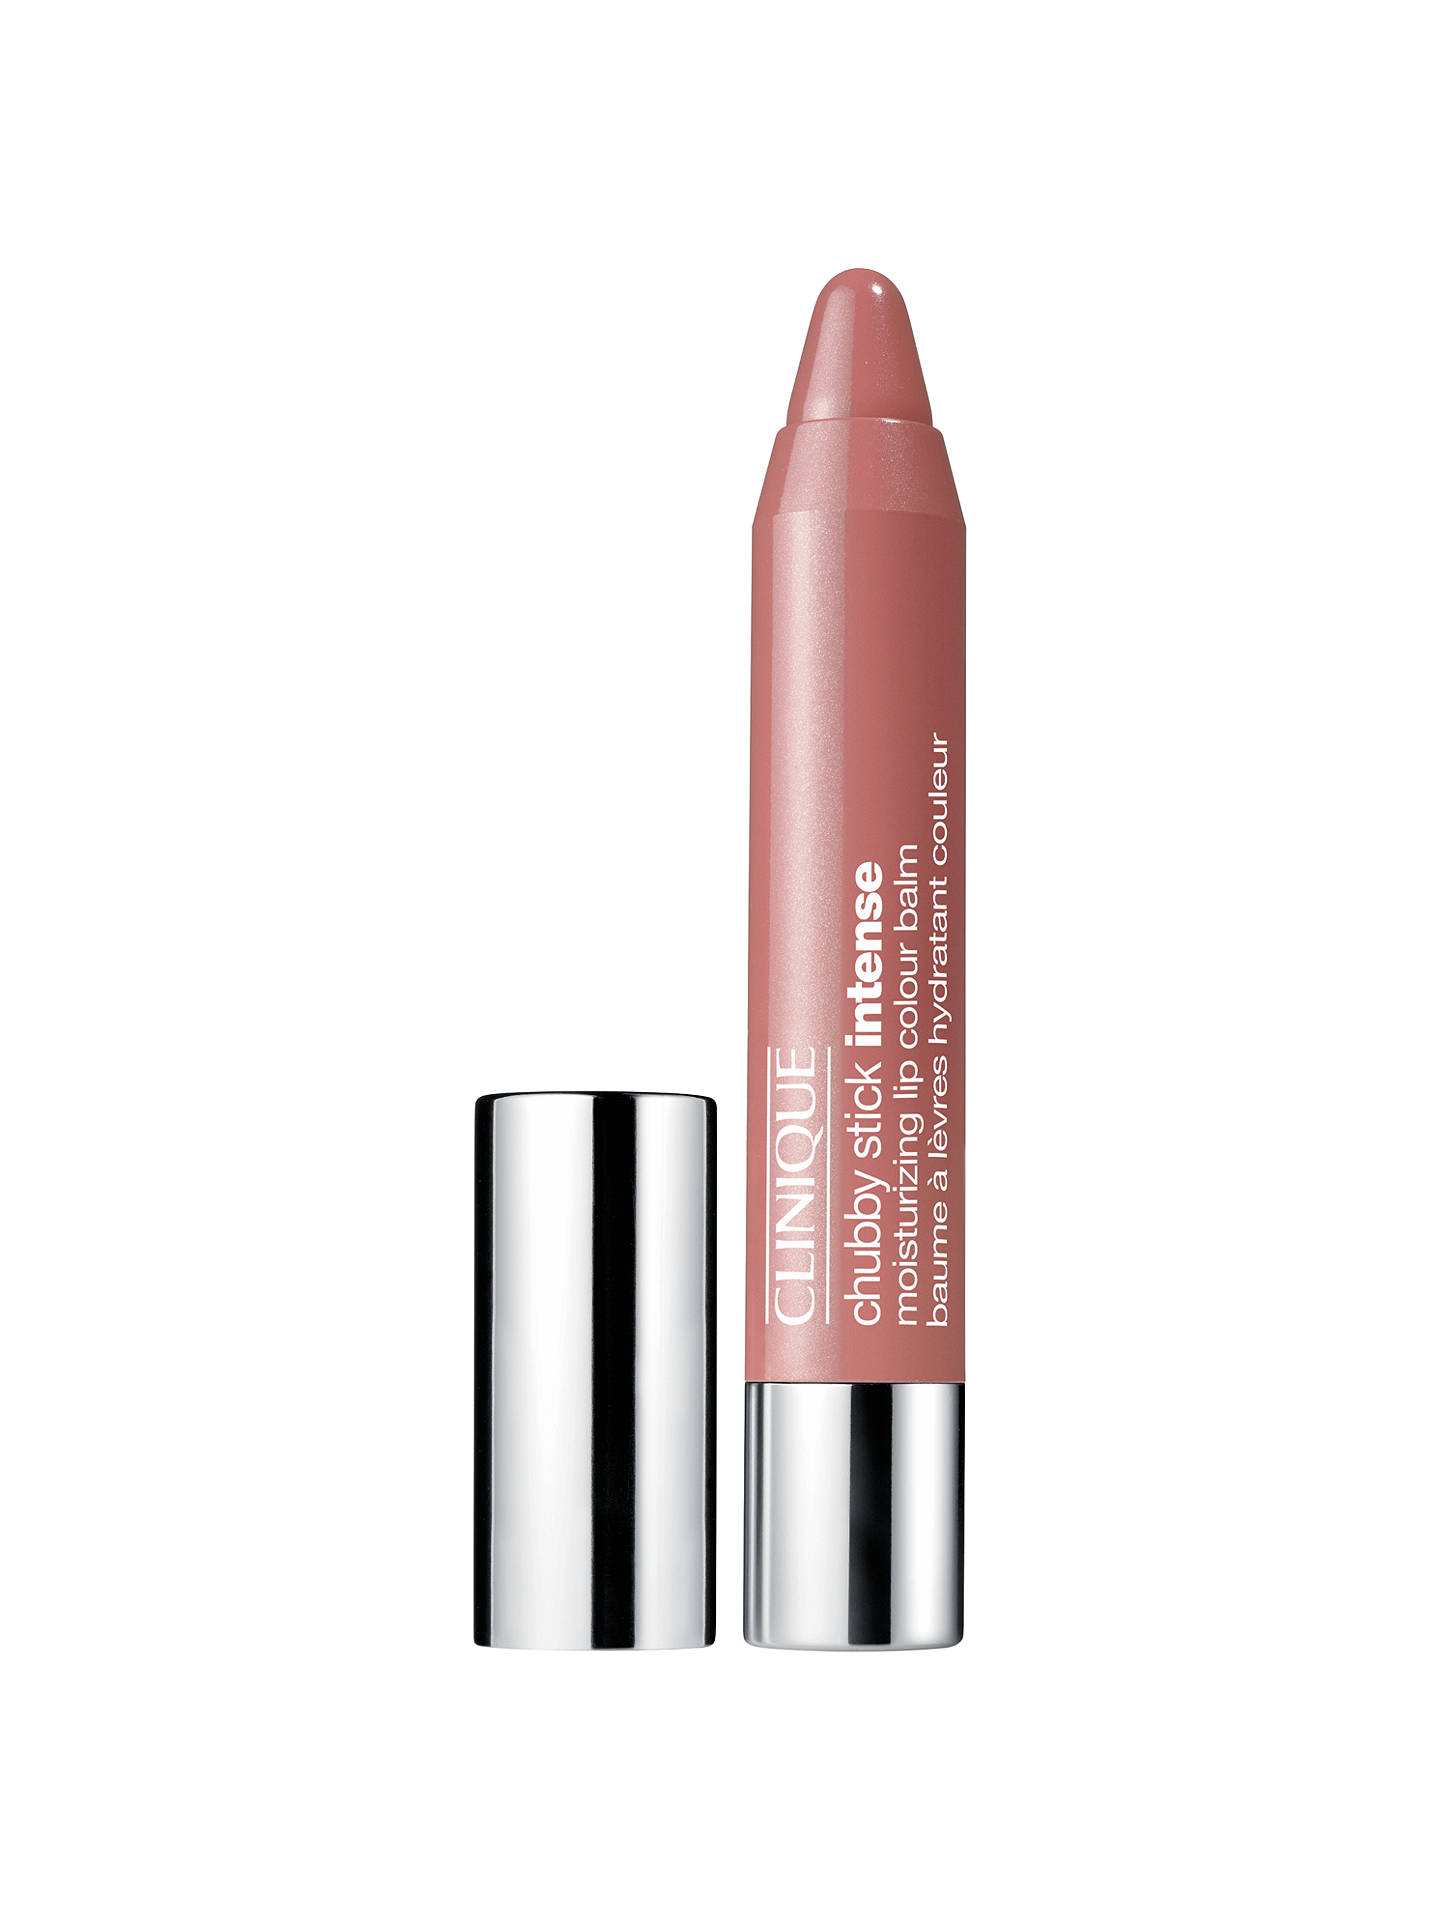 Buy Clinique Chubby Stick Intense Moisturising Lip Colour Balm, Curviest Caramel Online at johnlewis.com